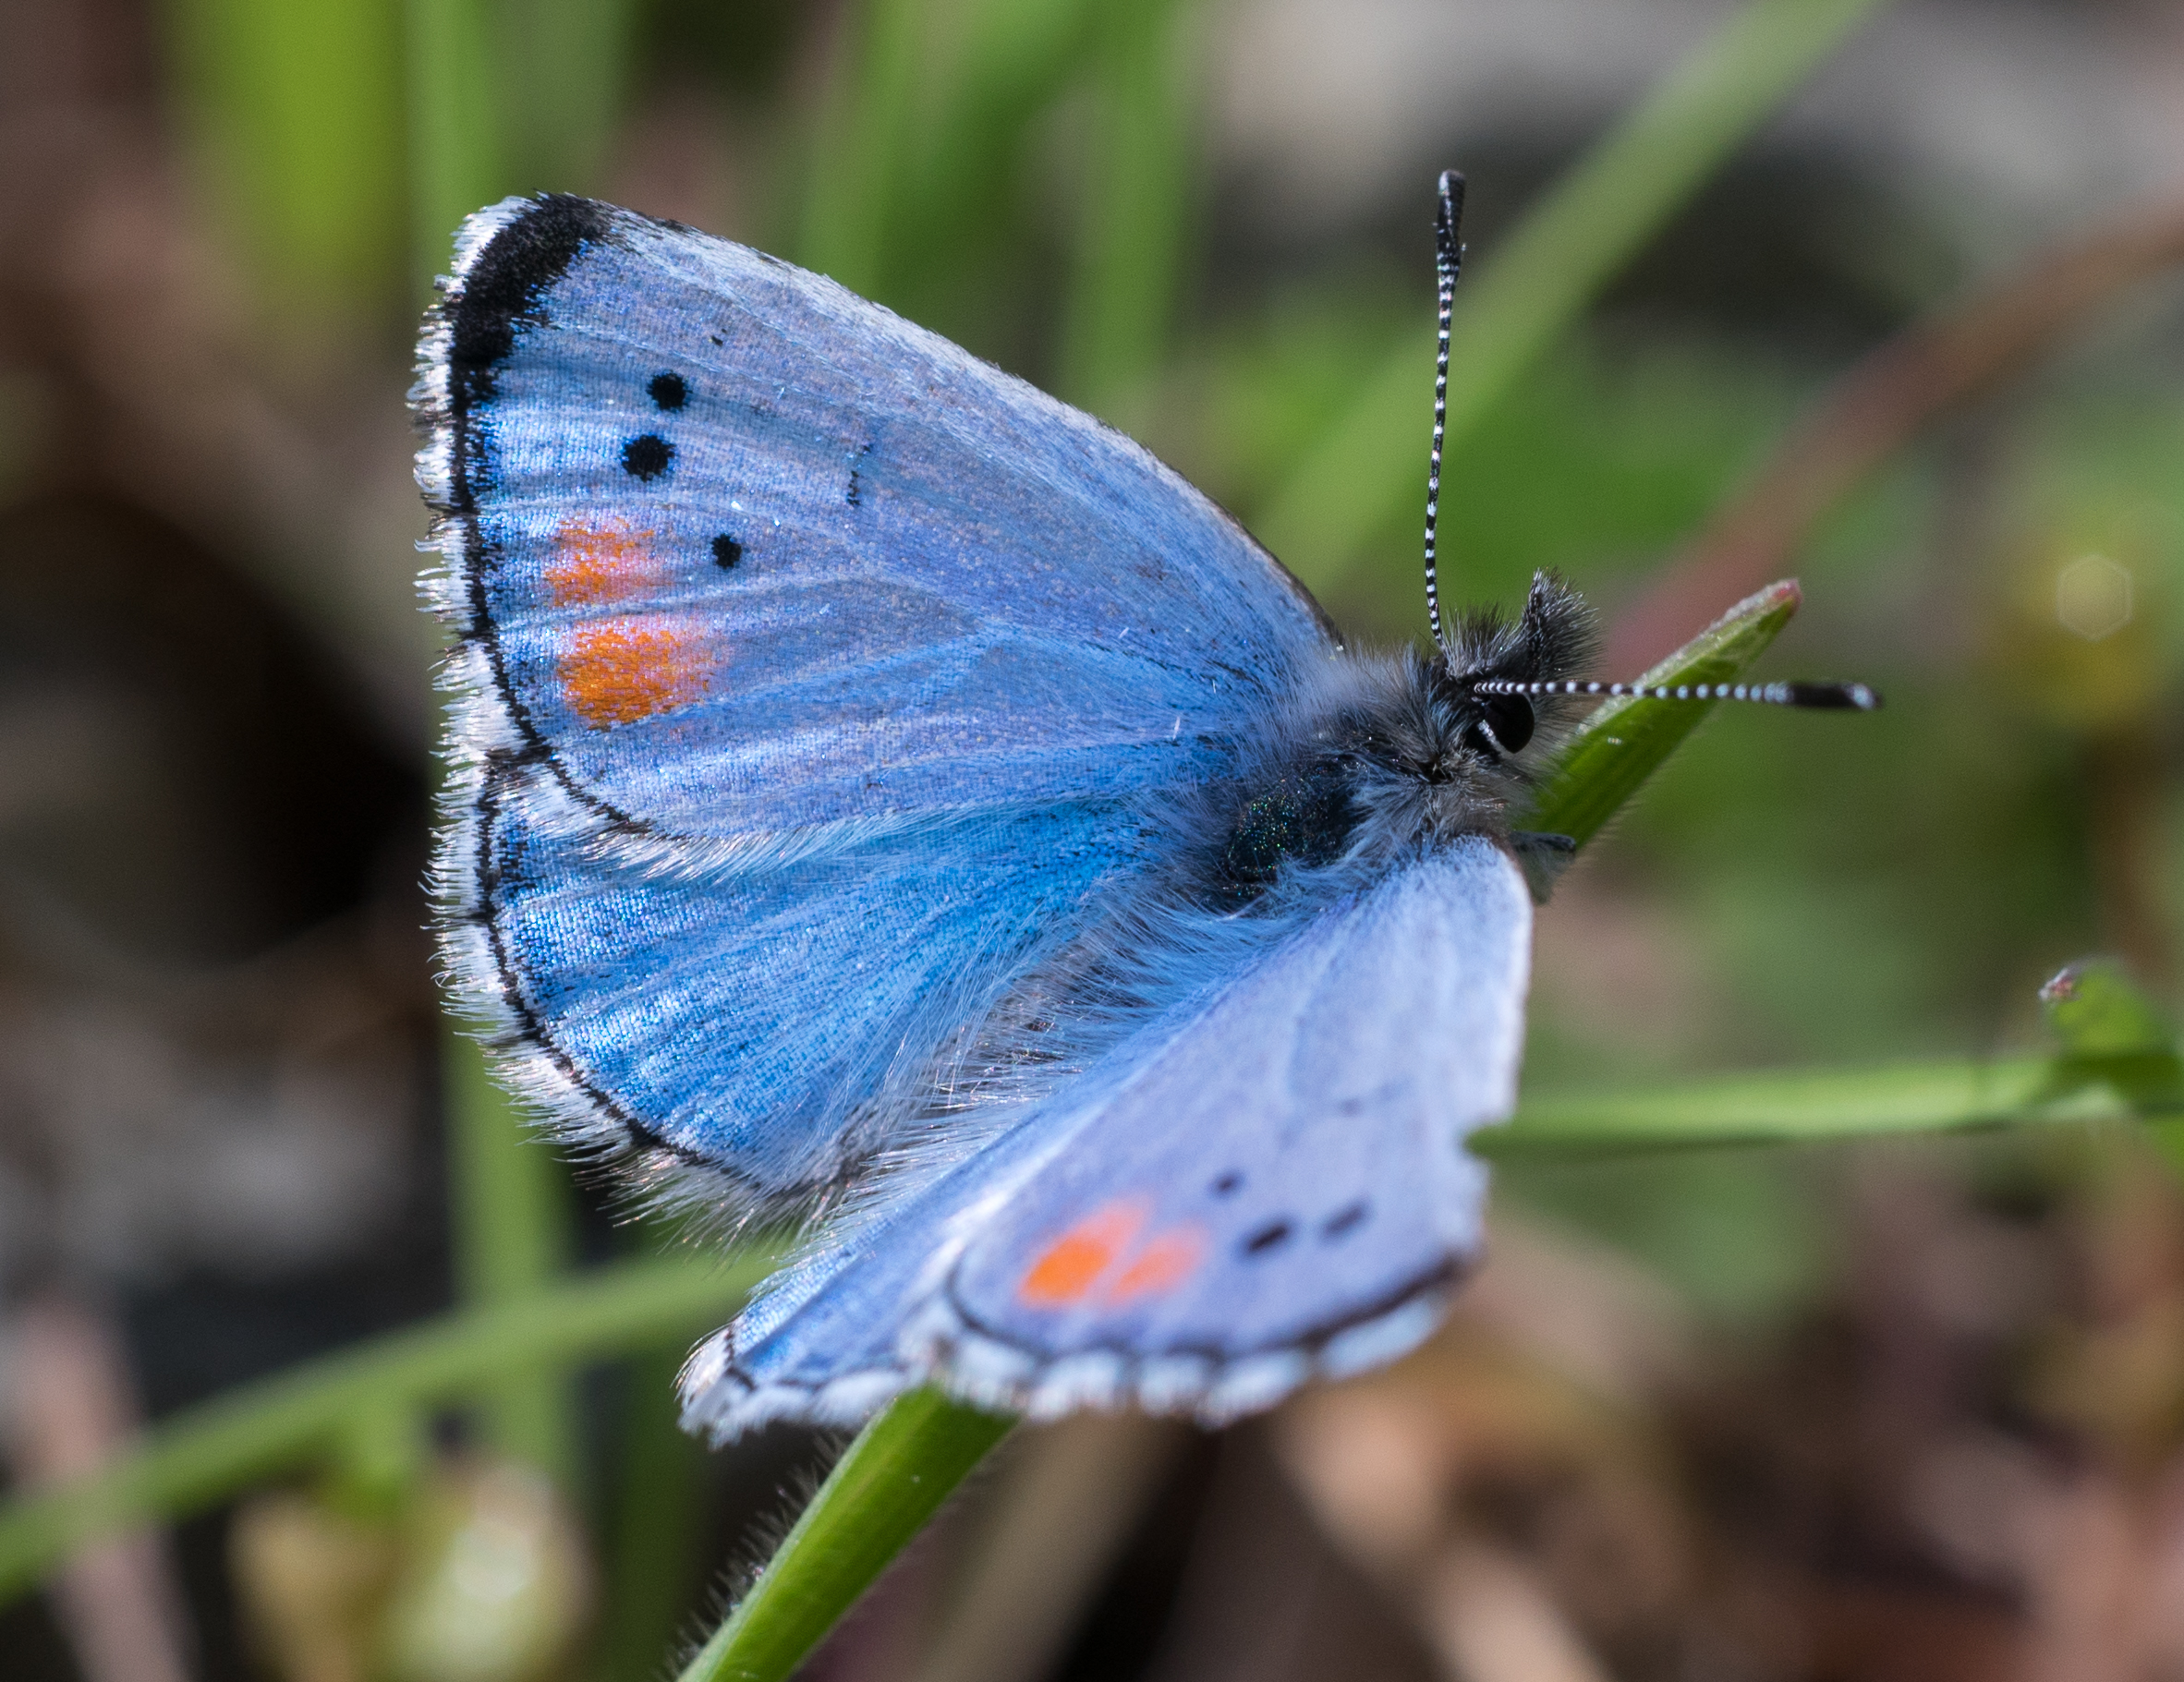 A male Sonoran Blue butterfly. Photo by Tony Iwane.